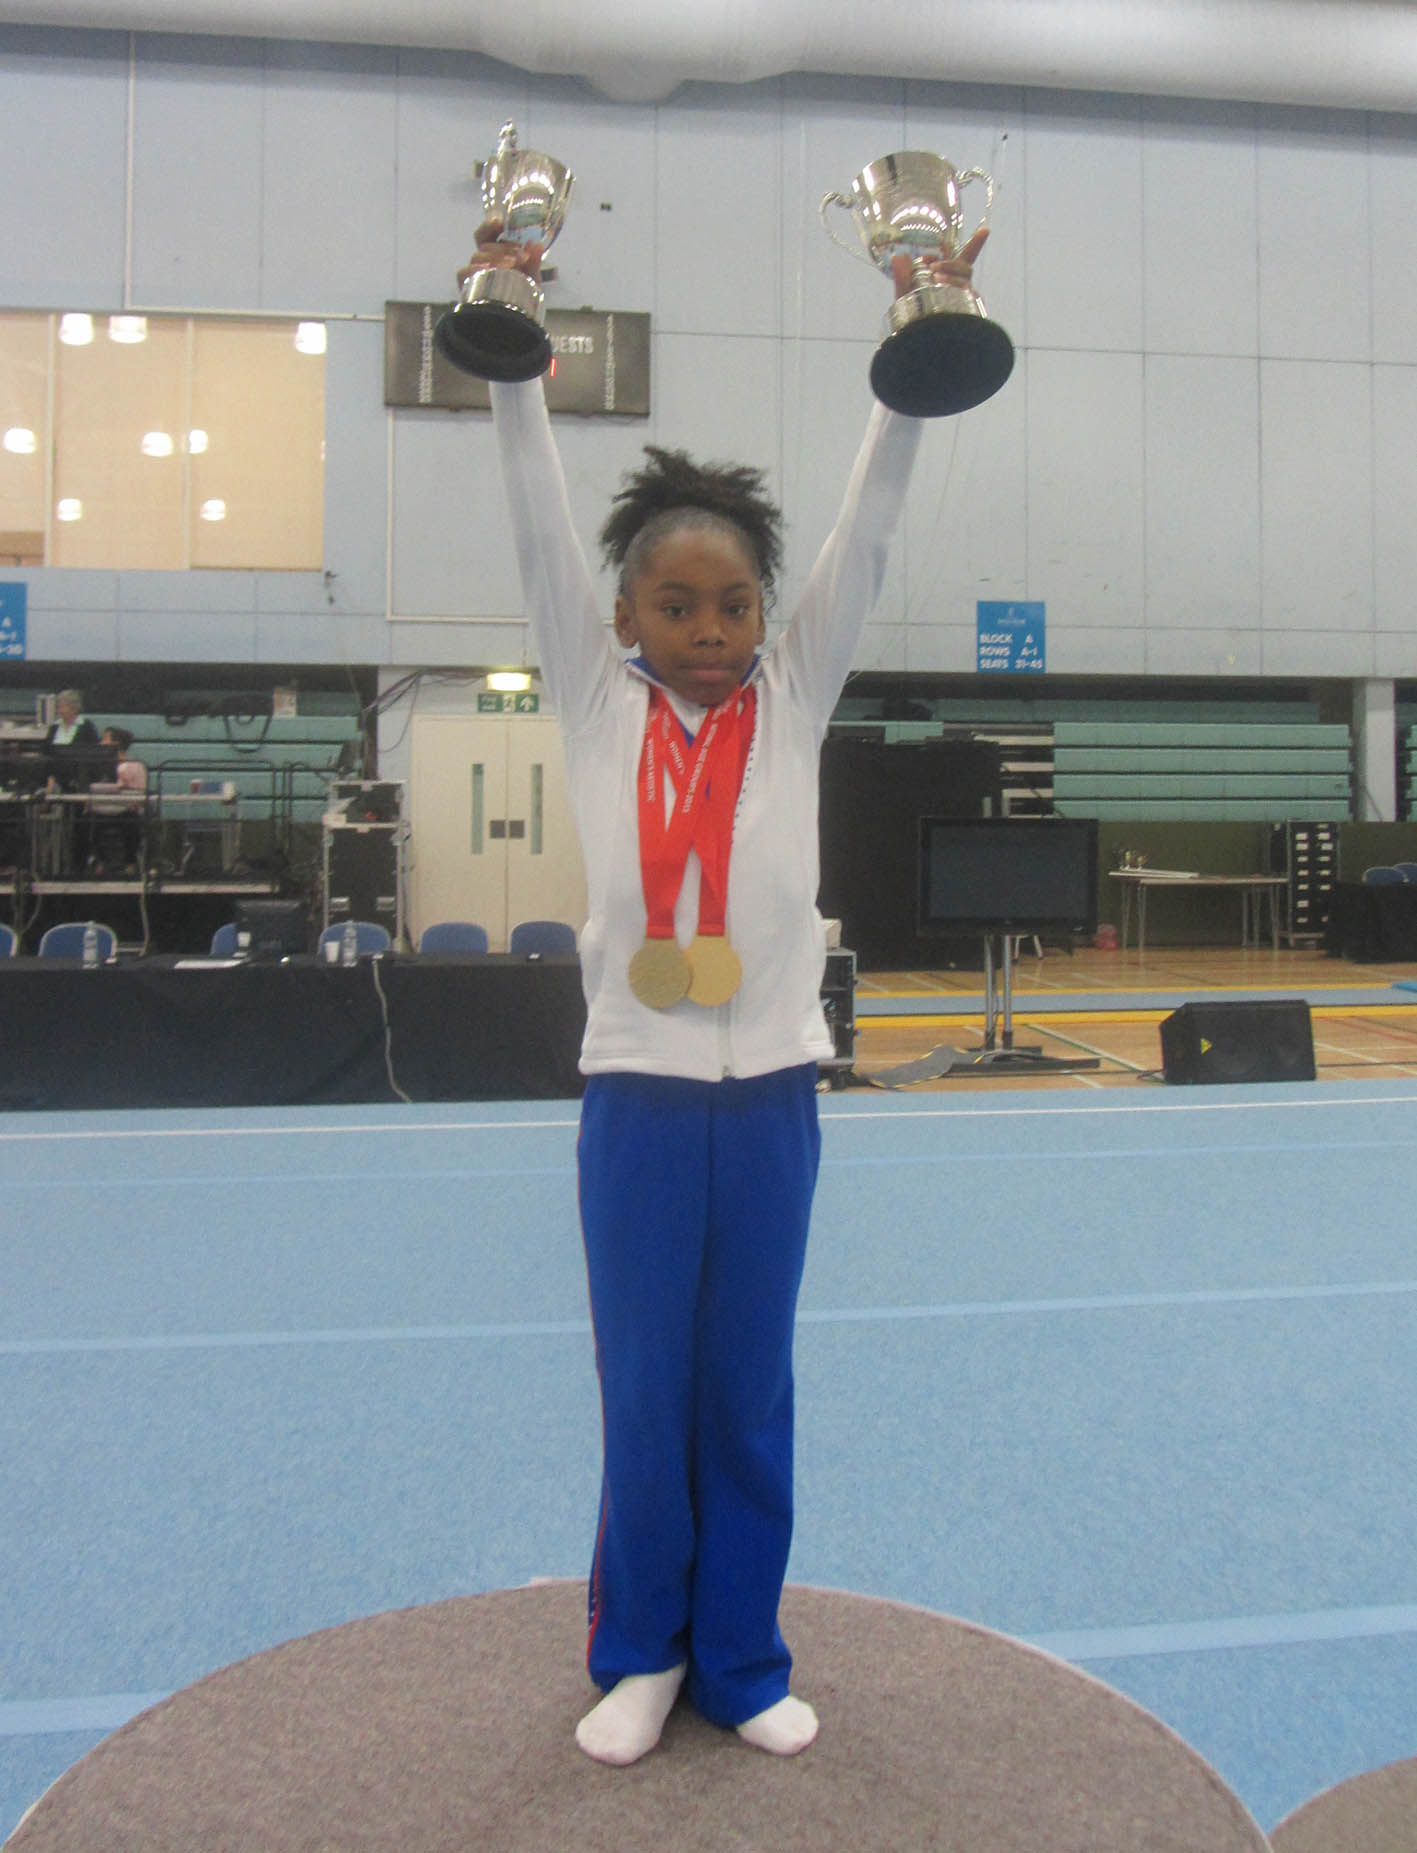 Taeja holding her Voluntary Level 2 championship trophies